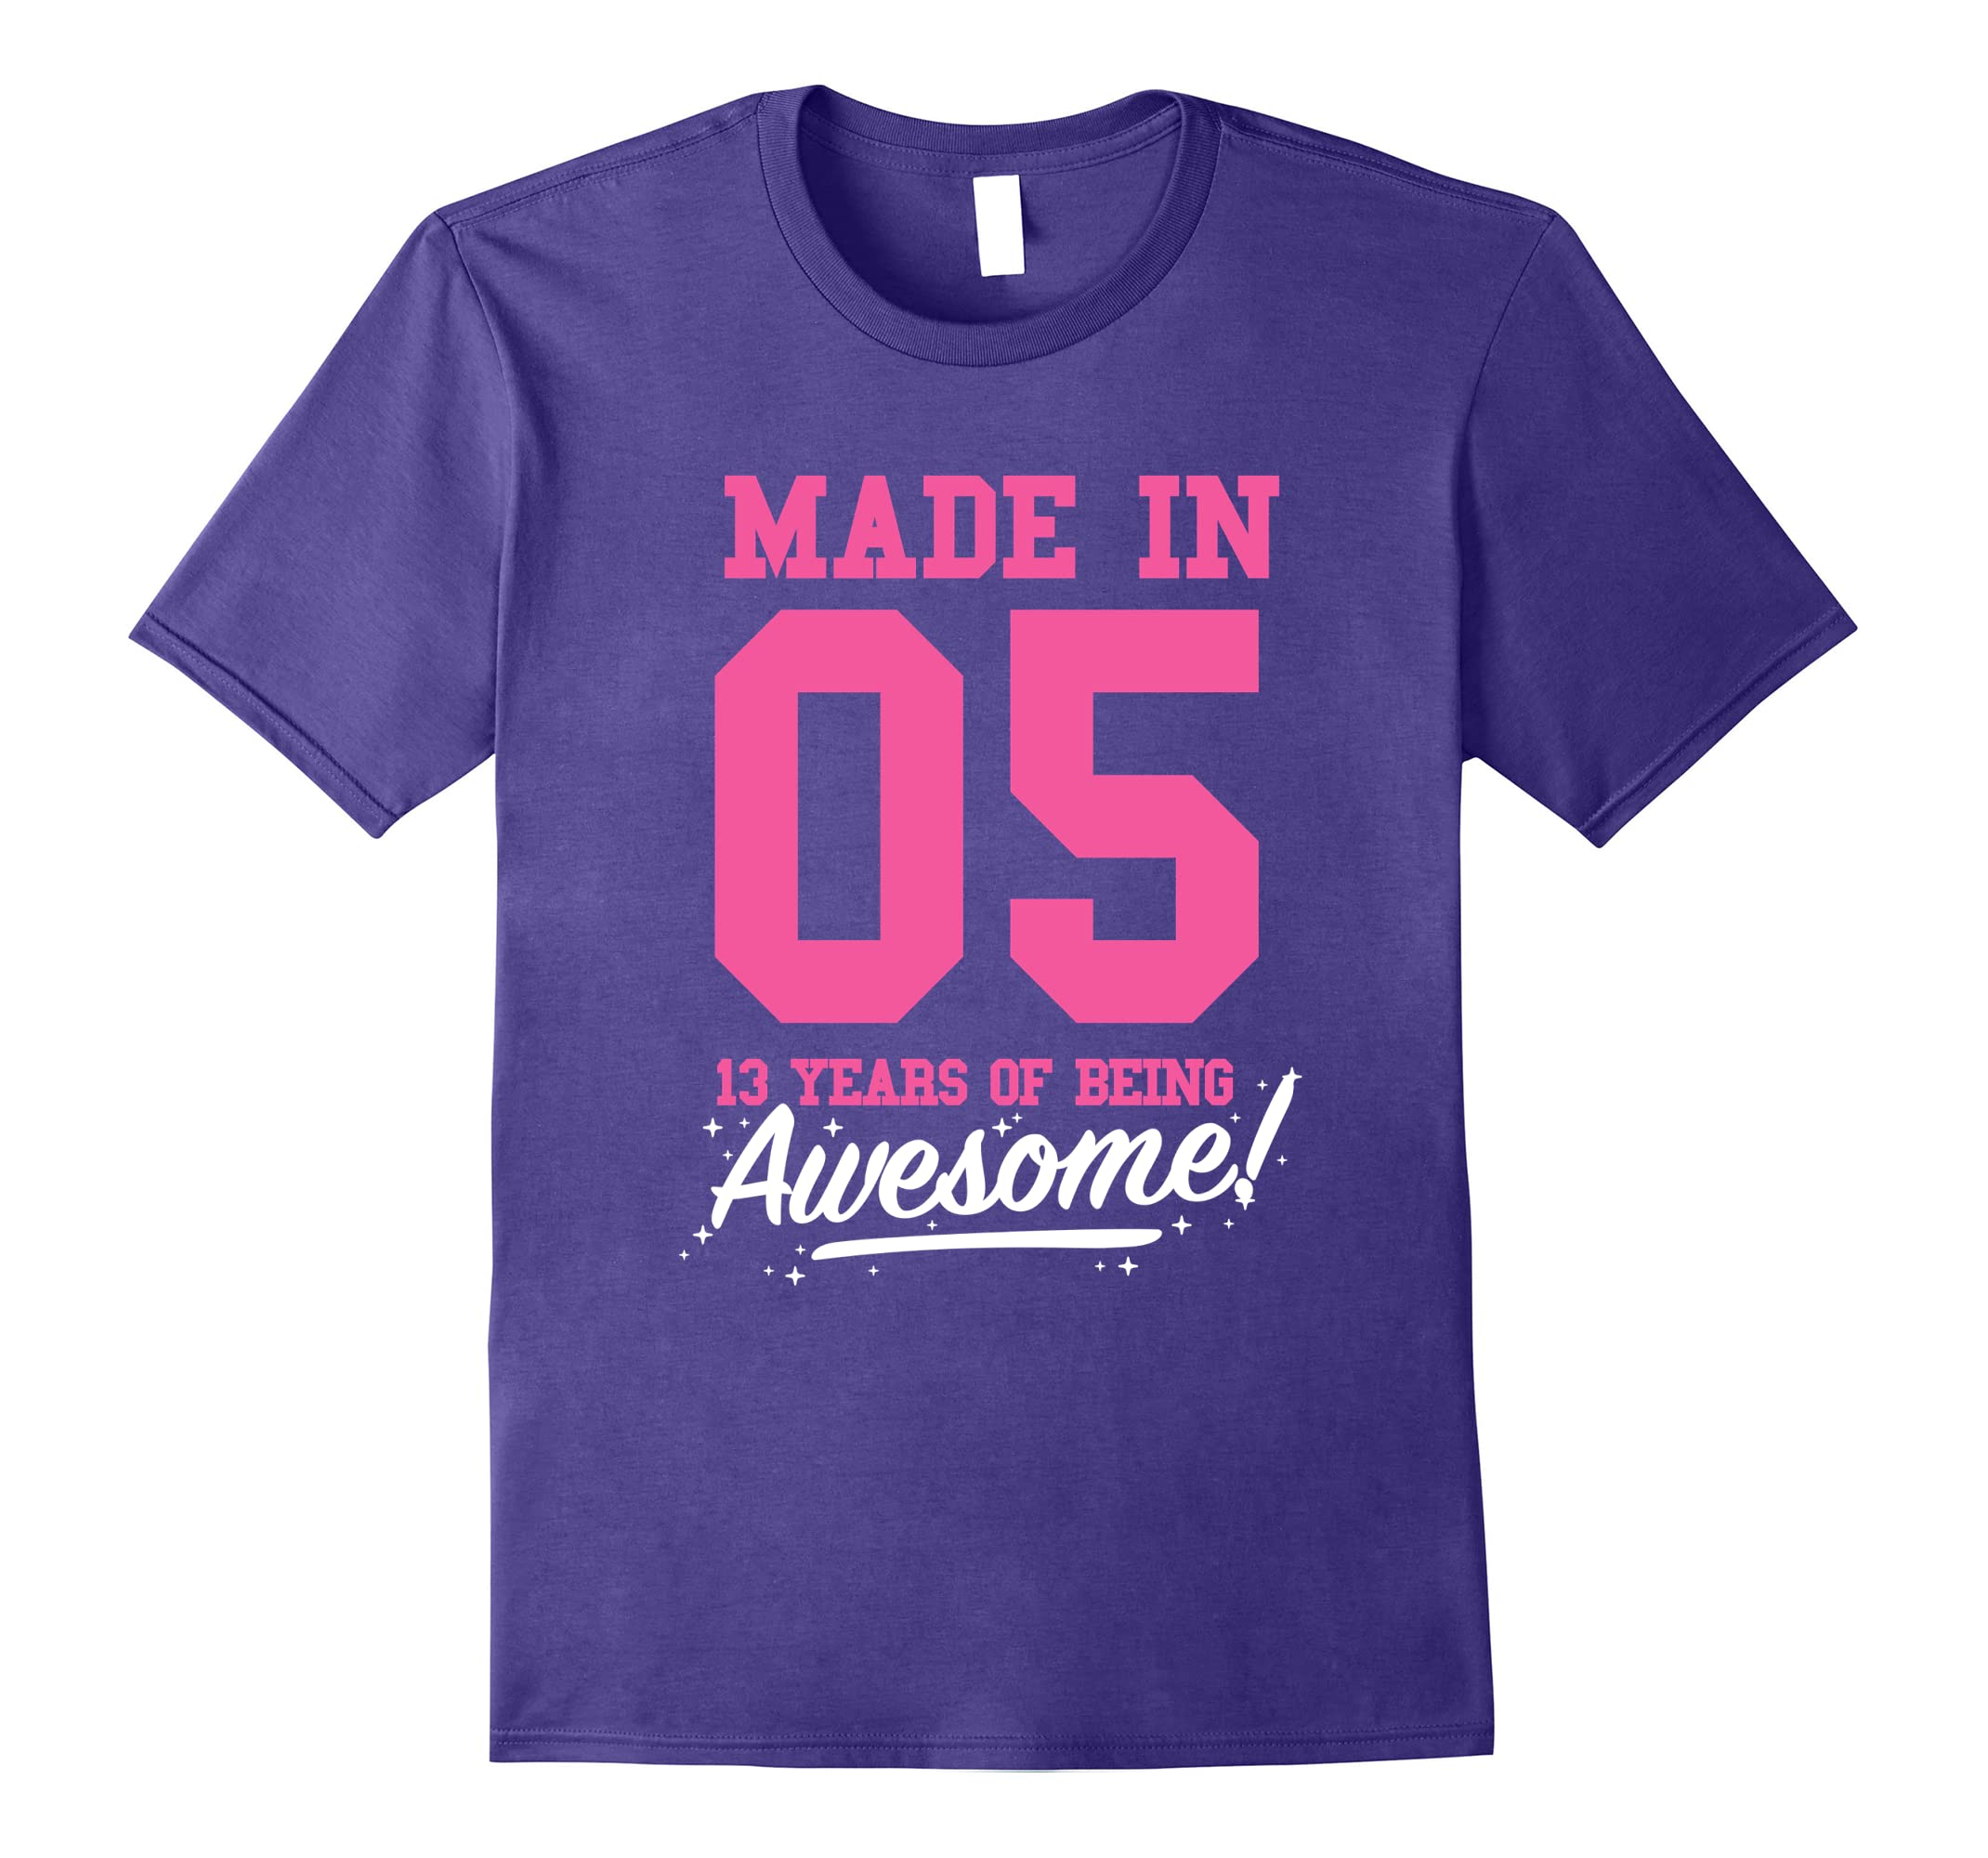 Made in 2005 awesome 13th birthday girl shirt pink t shirt for Made in t shirts